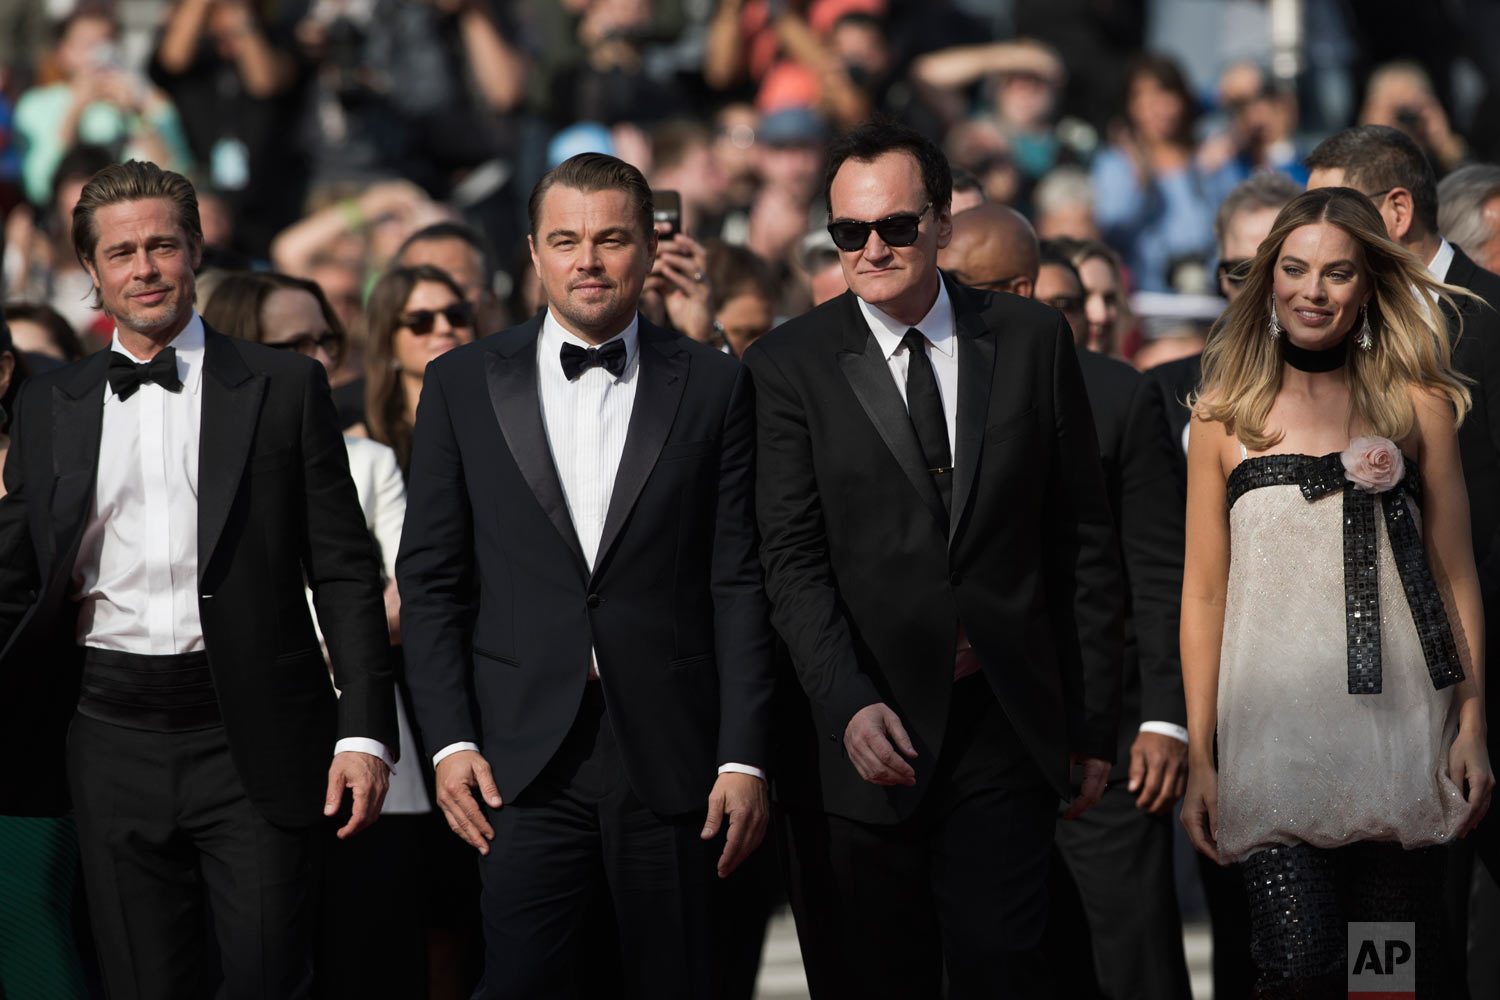 Actors Brad Pitt, from left, Leonardo DiCaprio, director Quentin Tarantino and actress Margot Robbie pose for photographers upon arrival at the premiere of the film 'Once Upon a Time in Hollywood' at the 72nd international film festival, Cannes, southern France, May 21, 2019. (AP Photo/Petros Giannakouris)